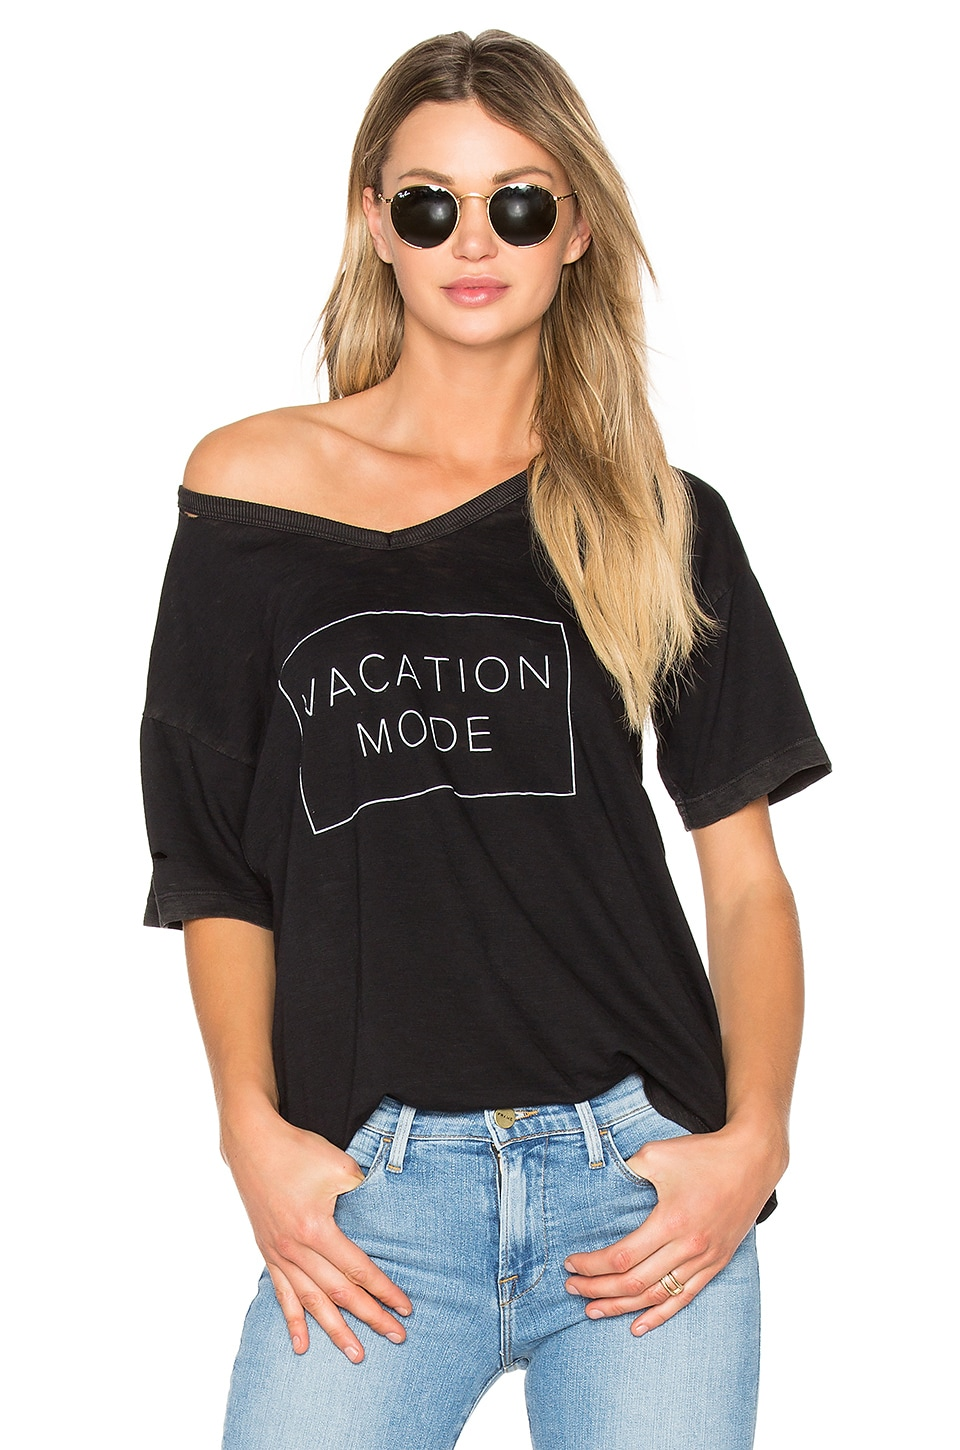 TYLER JACOBS Orly Vacation Mode Tee in Black Velvet